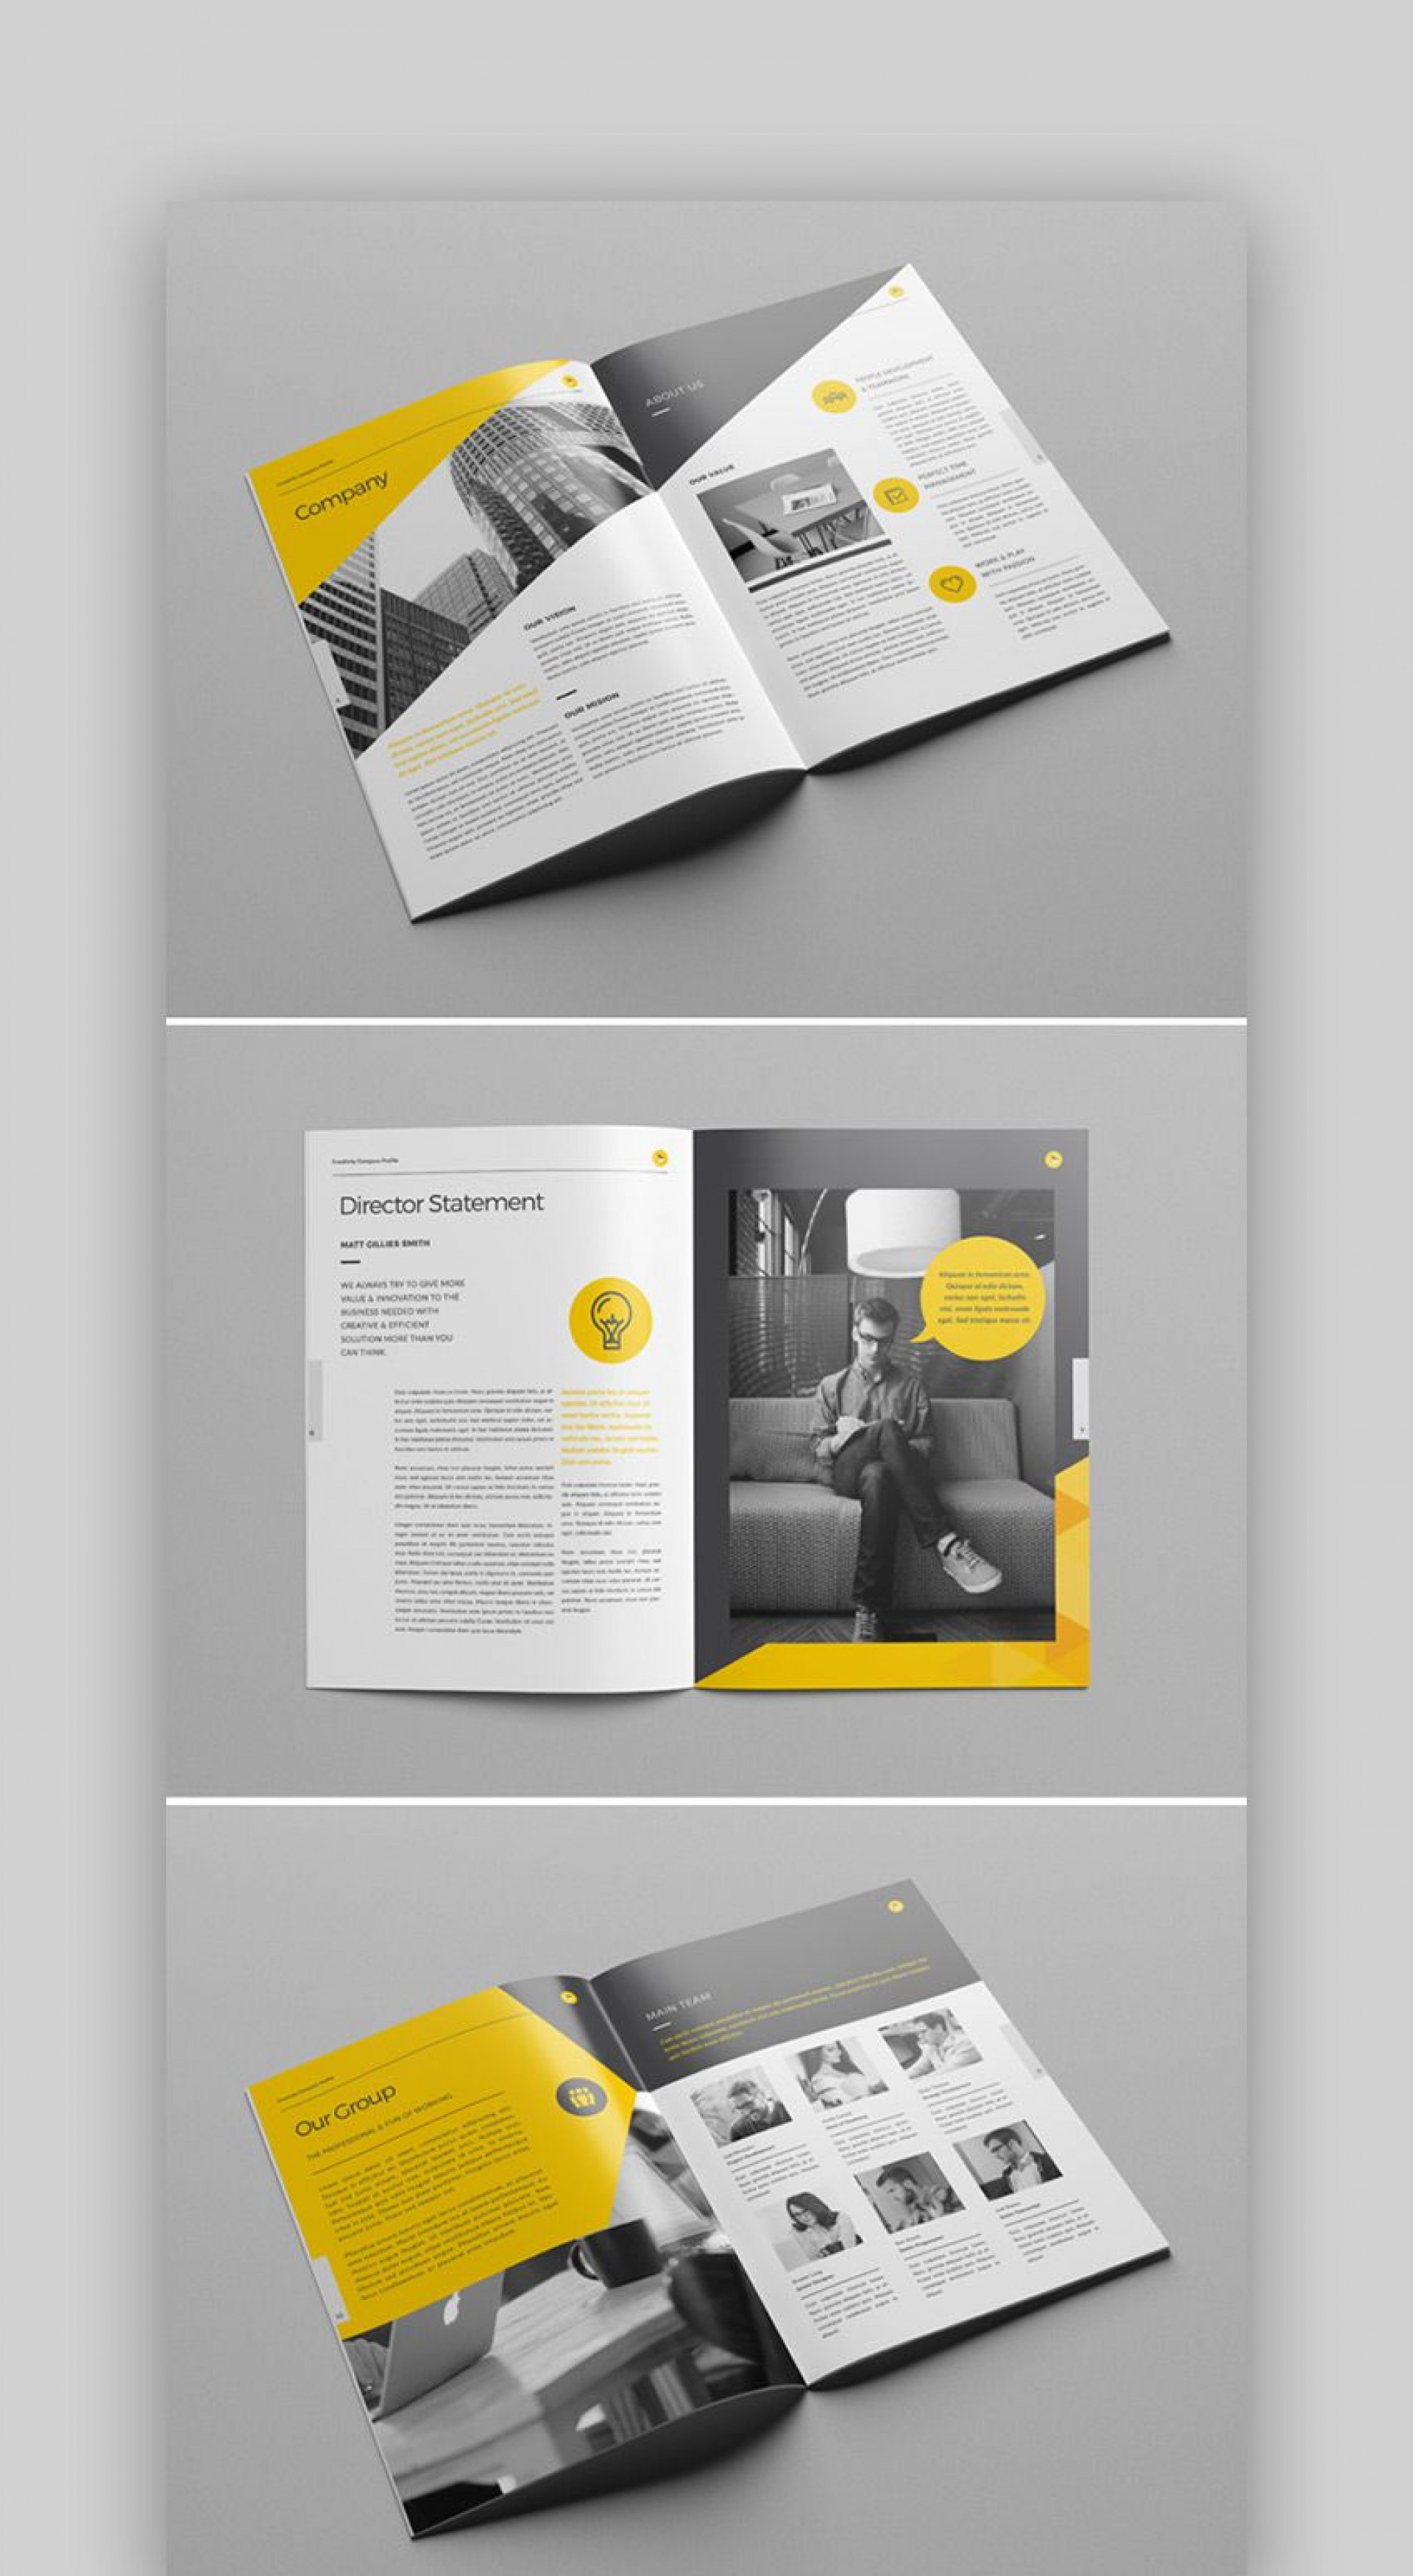 009 Outstanding Indesign A4 Brochure Template Free Download Highest Clarity 1920